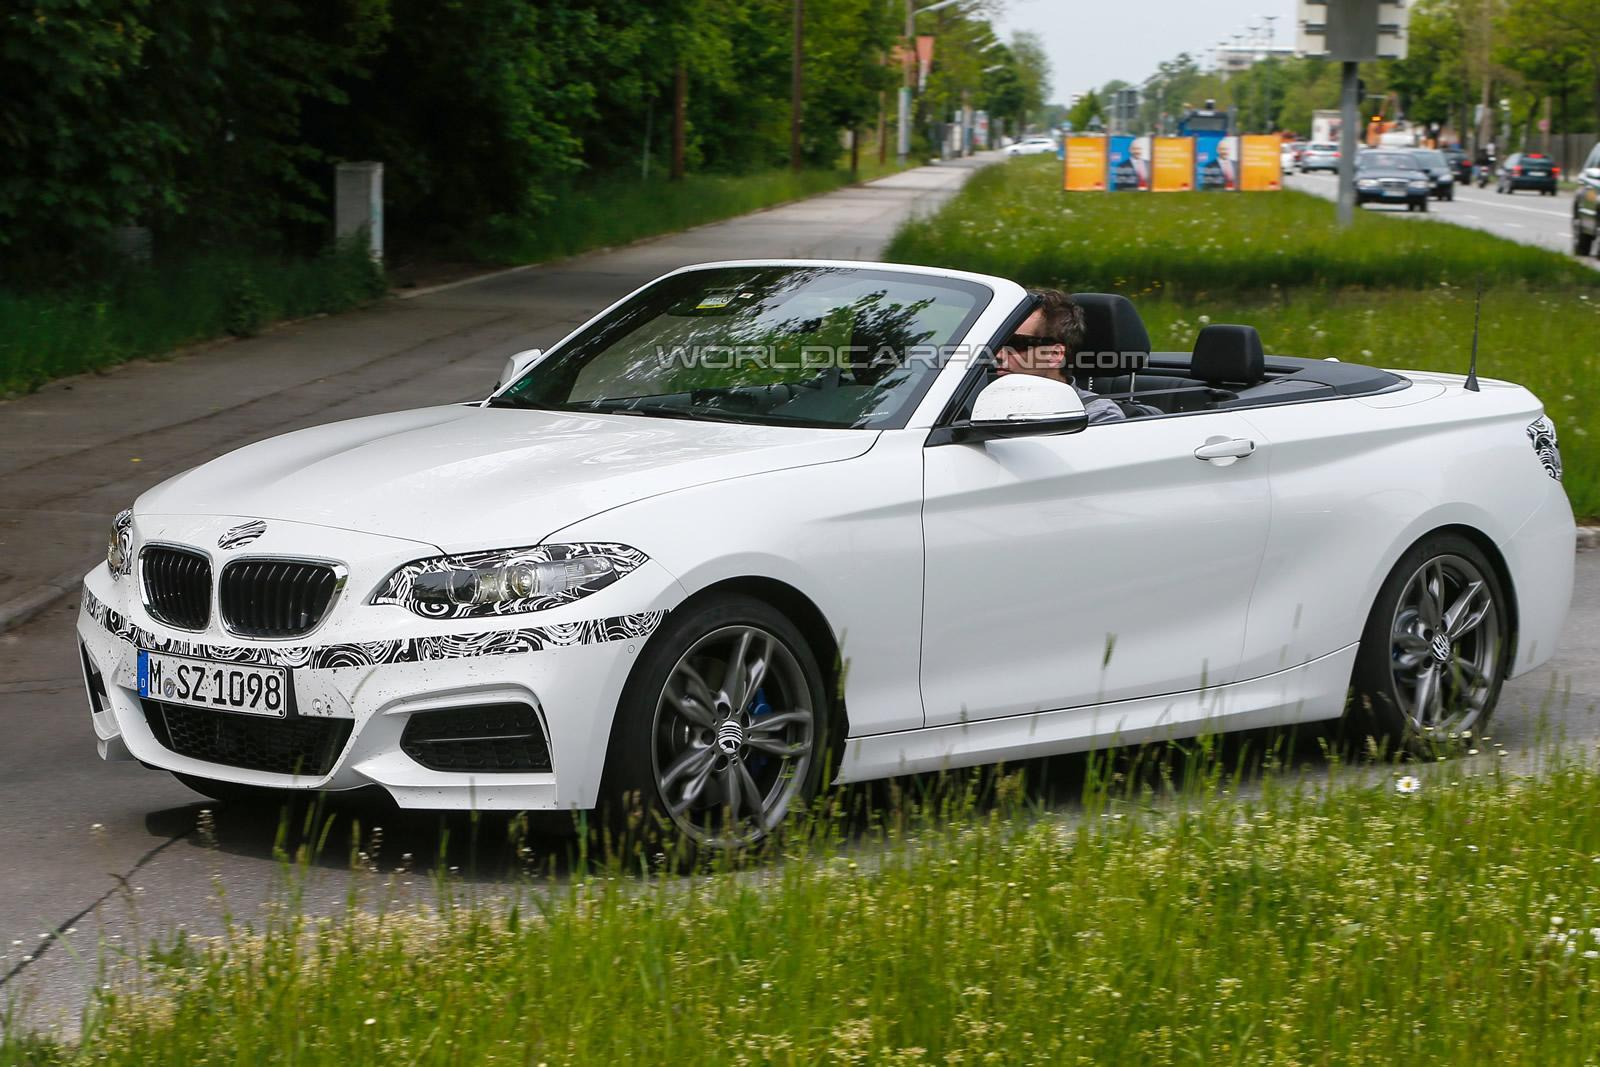 bmw 2 series cabriolet tests with little camo gtspirit. Black Bedroom Furniture Sets. Home Design Ideas